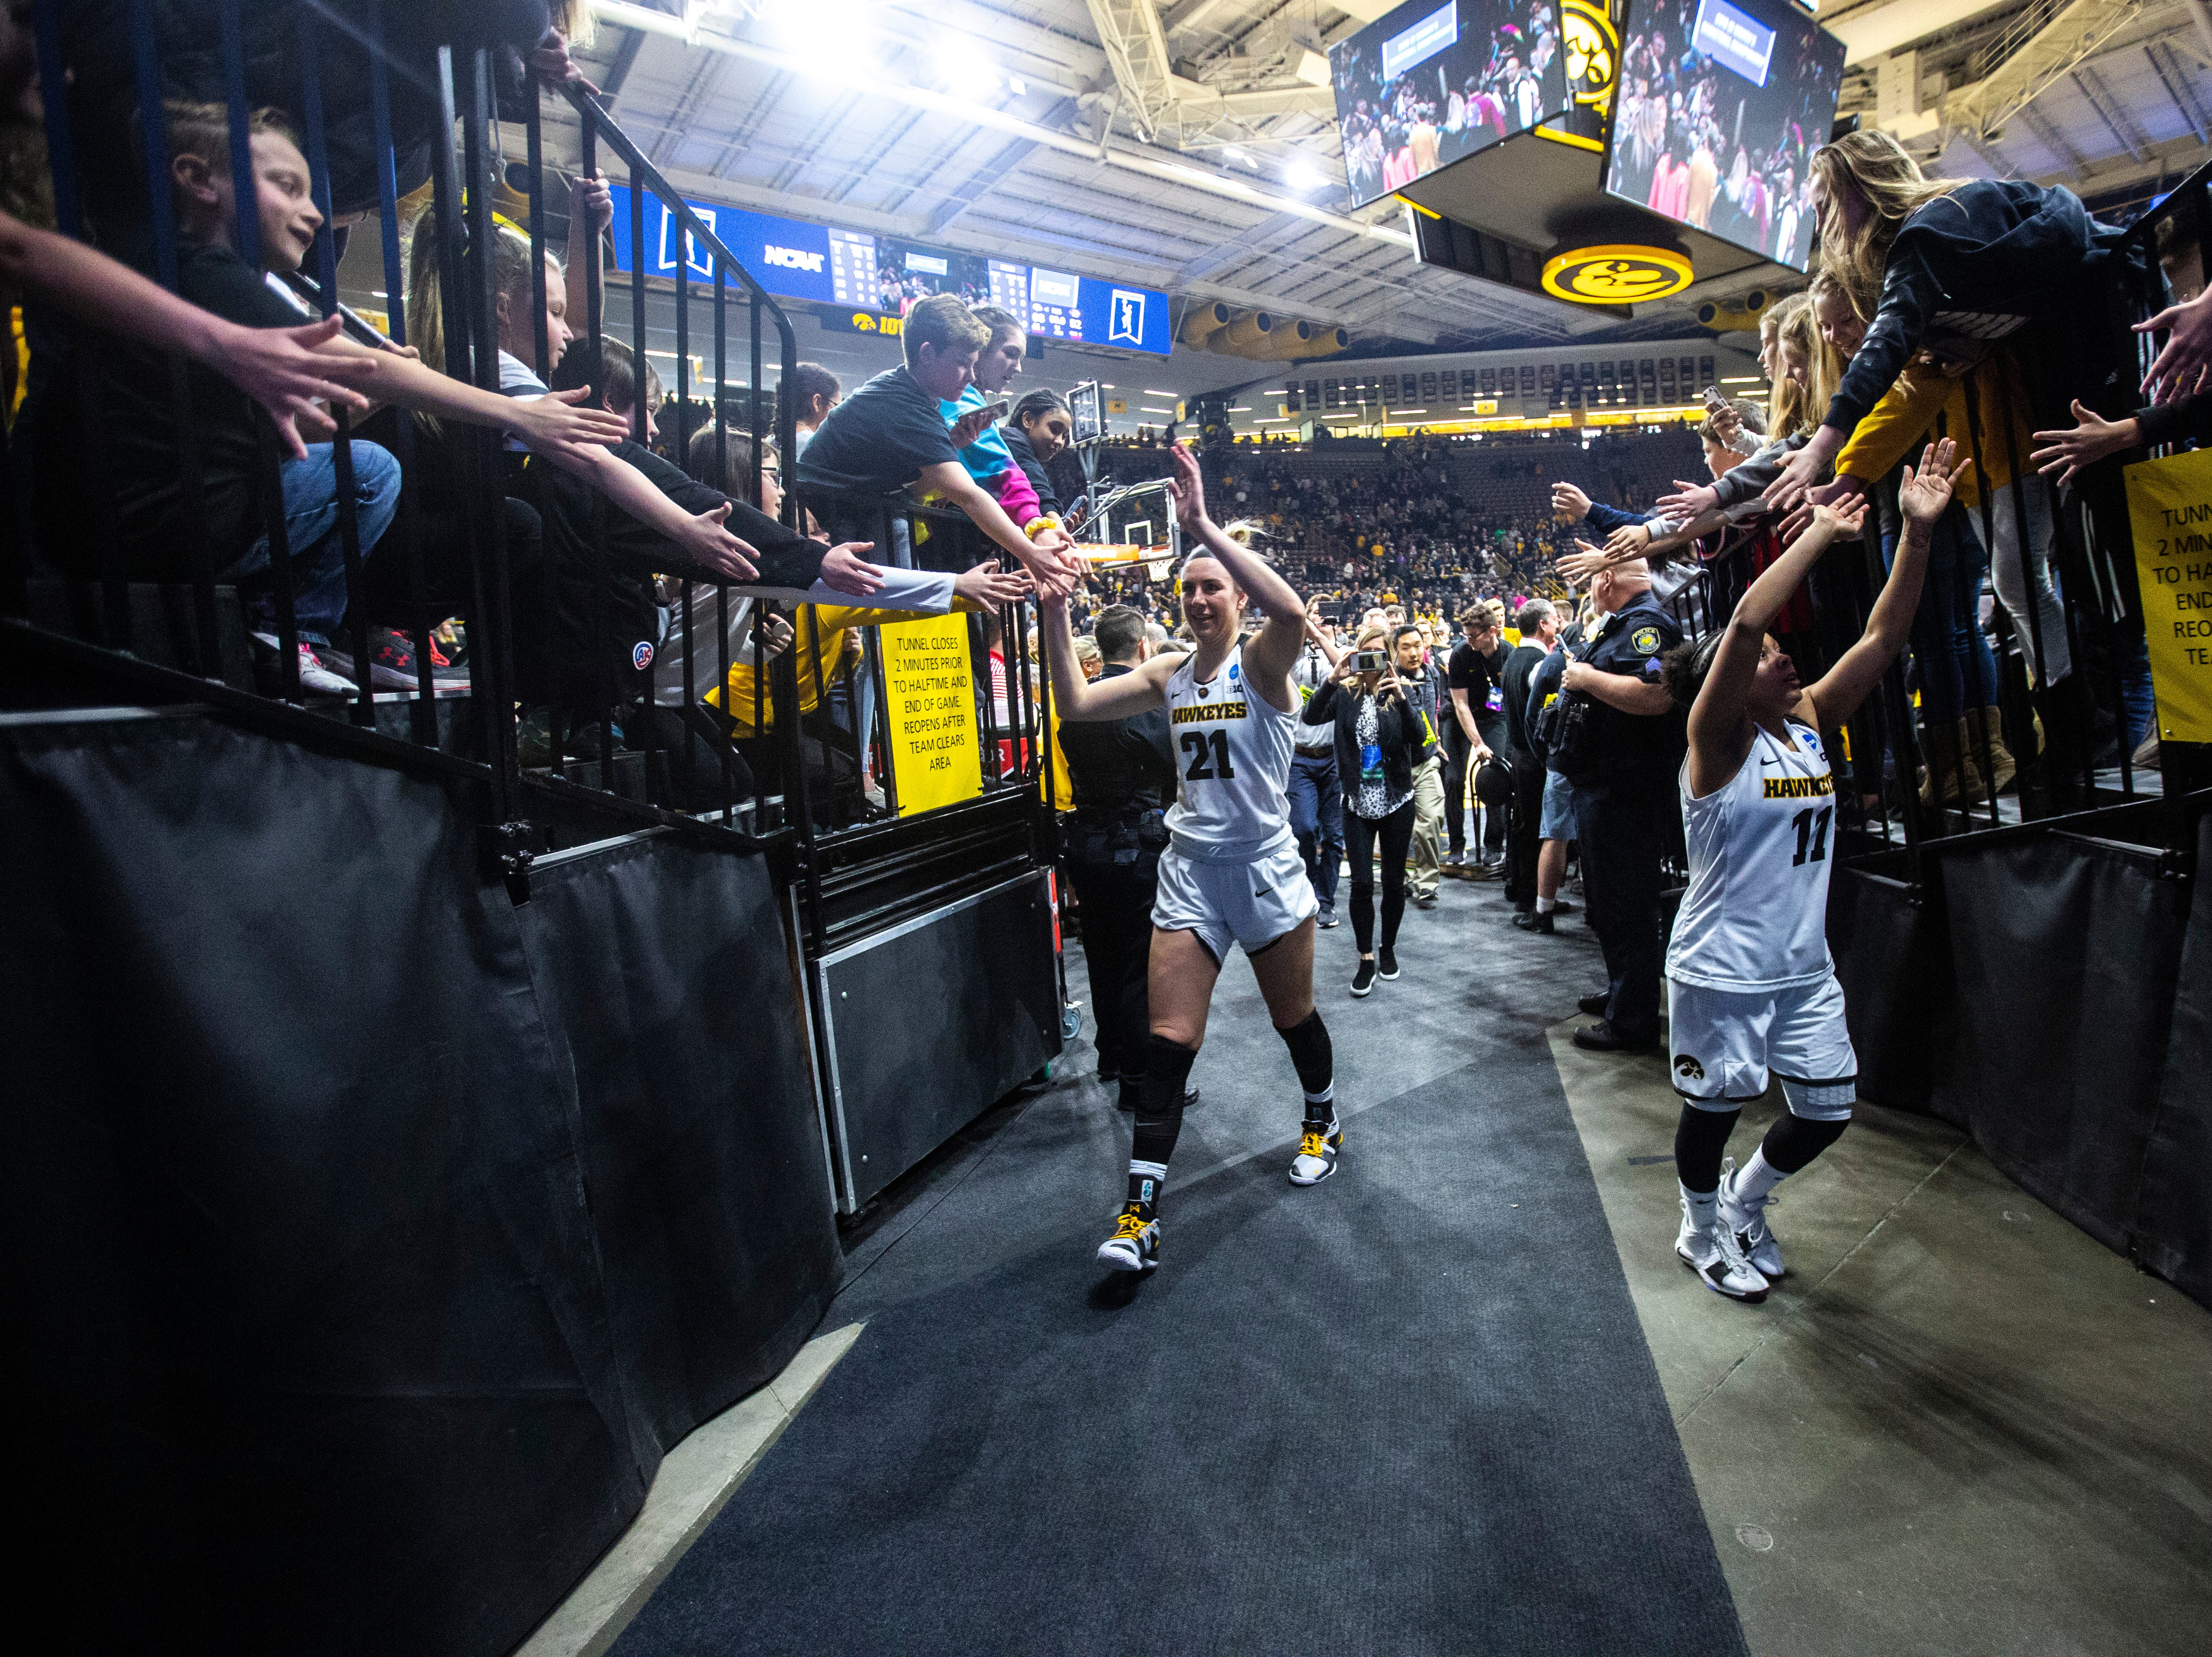 Iowa forward Hannah Stewart (21) and Iowa guard Tania Davis (11) high-five fans while leaving the court after a NCAA women's basketball tournament second-round game, Sunday, March 24, 2019, at Carver-Hawkeye Arena in Iowa City, Iowa.